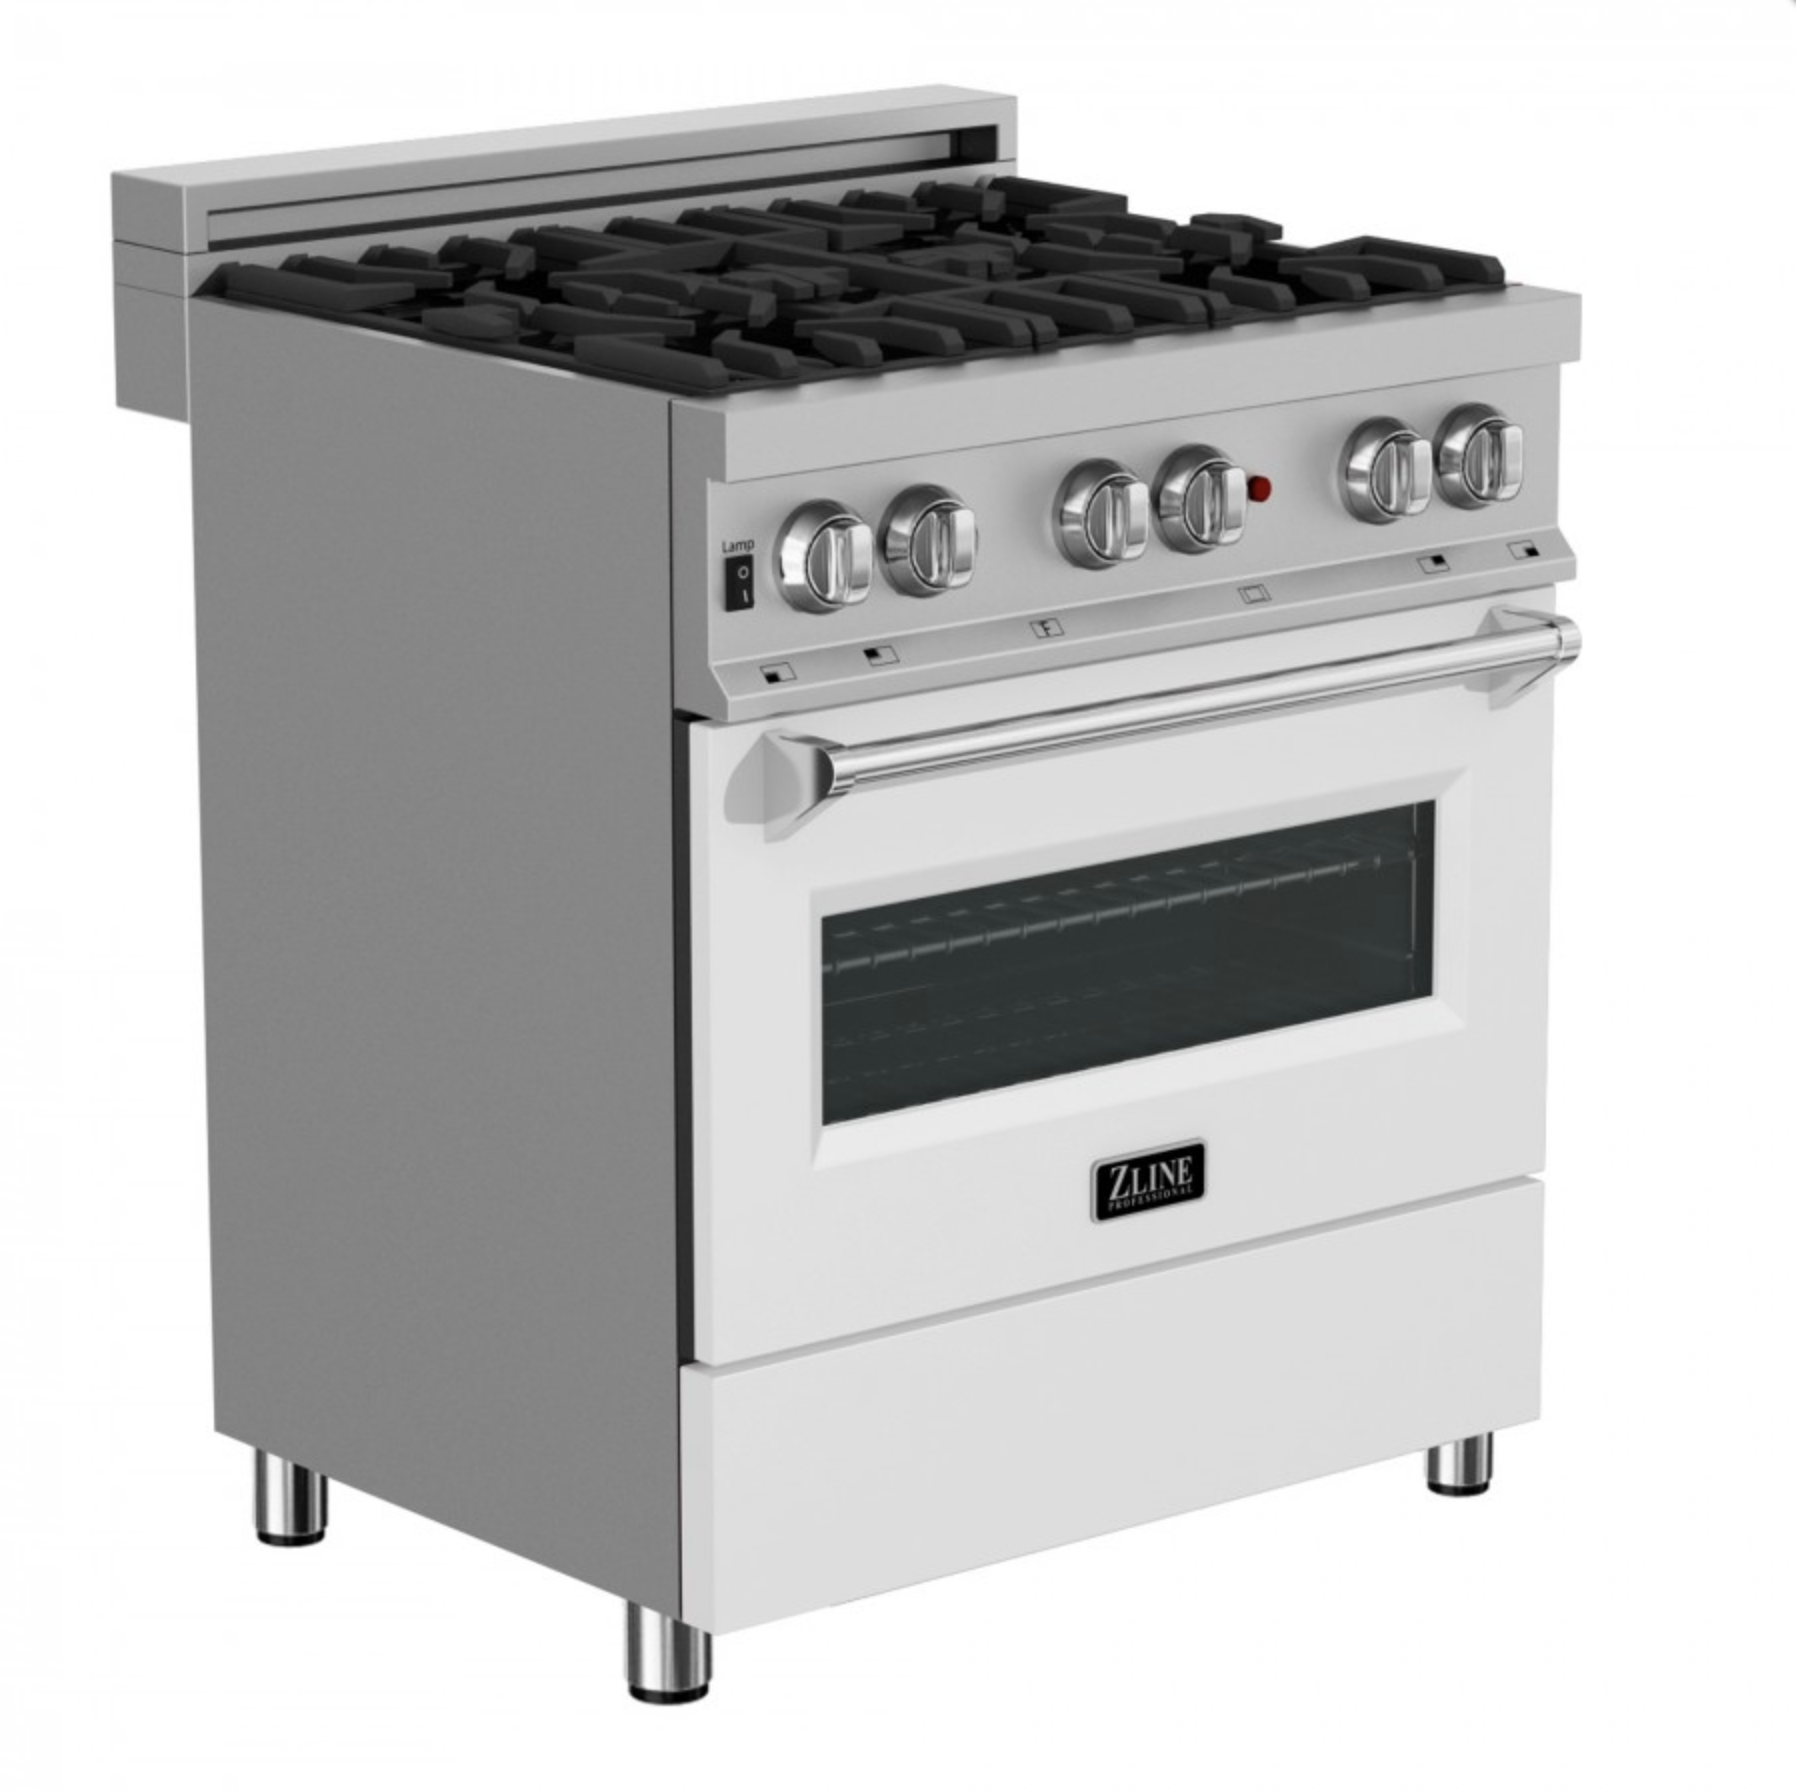 ZLINE'S DUAL FUEL RANGE  ALLOW TO EASY CUSTOMIZATION WITH REMOVABLE COLORED PANELS.